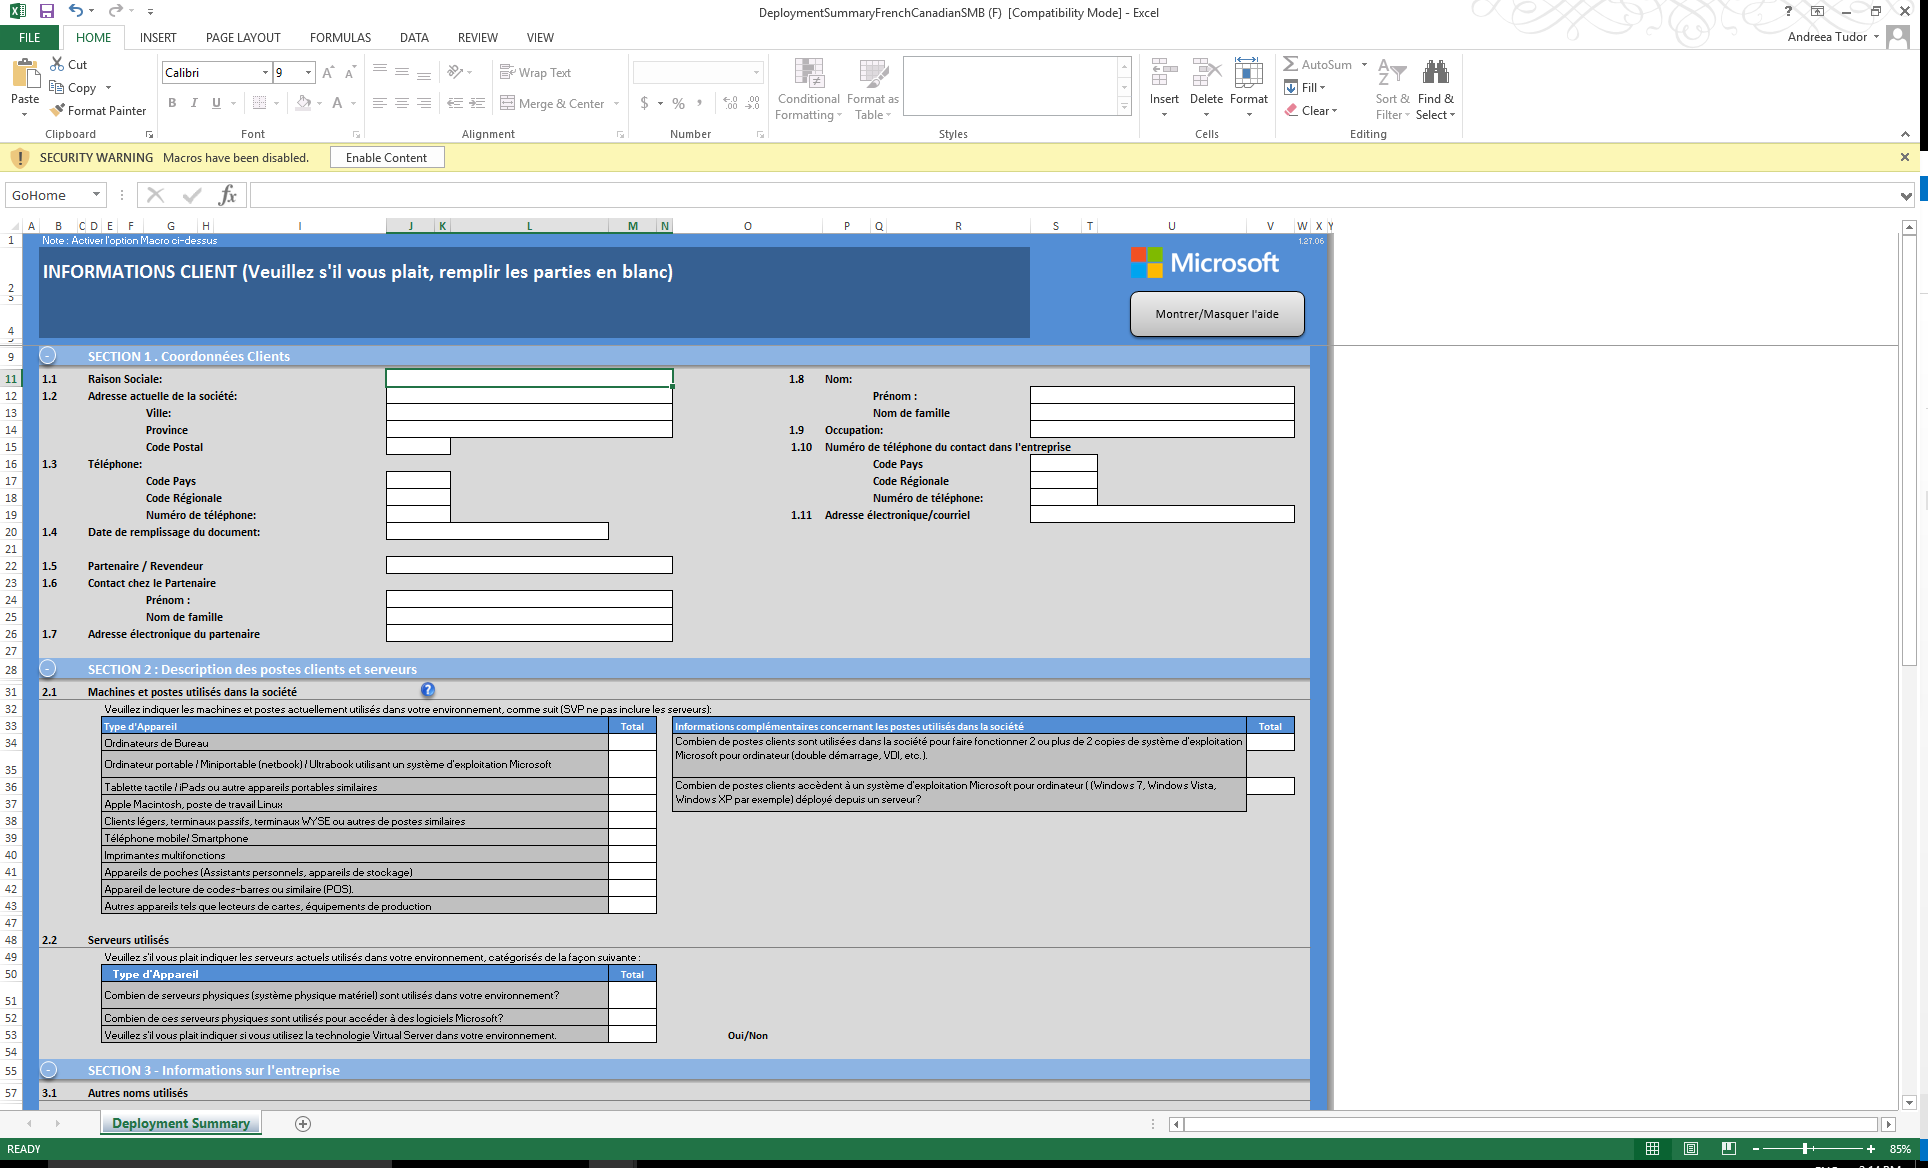 Be prepared for microsoft compliance audit bang cloud experts inventory of your equipment desktops tablets terminals smart phones printers servers 1betcityfo Images